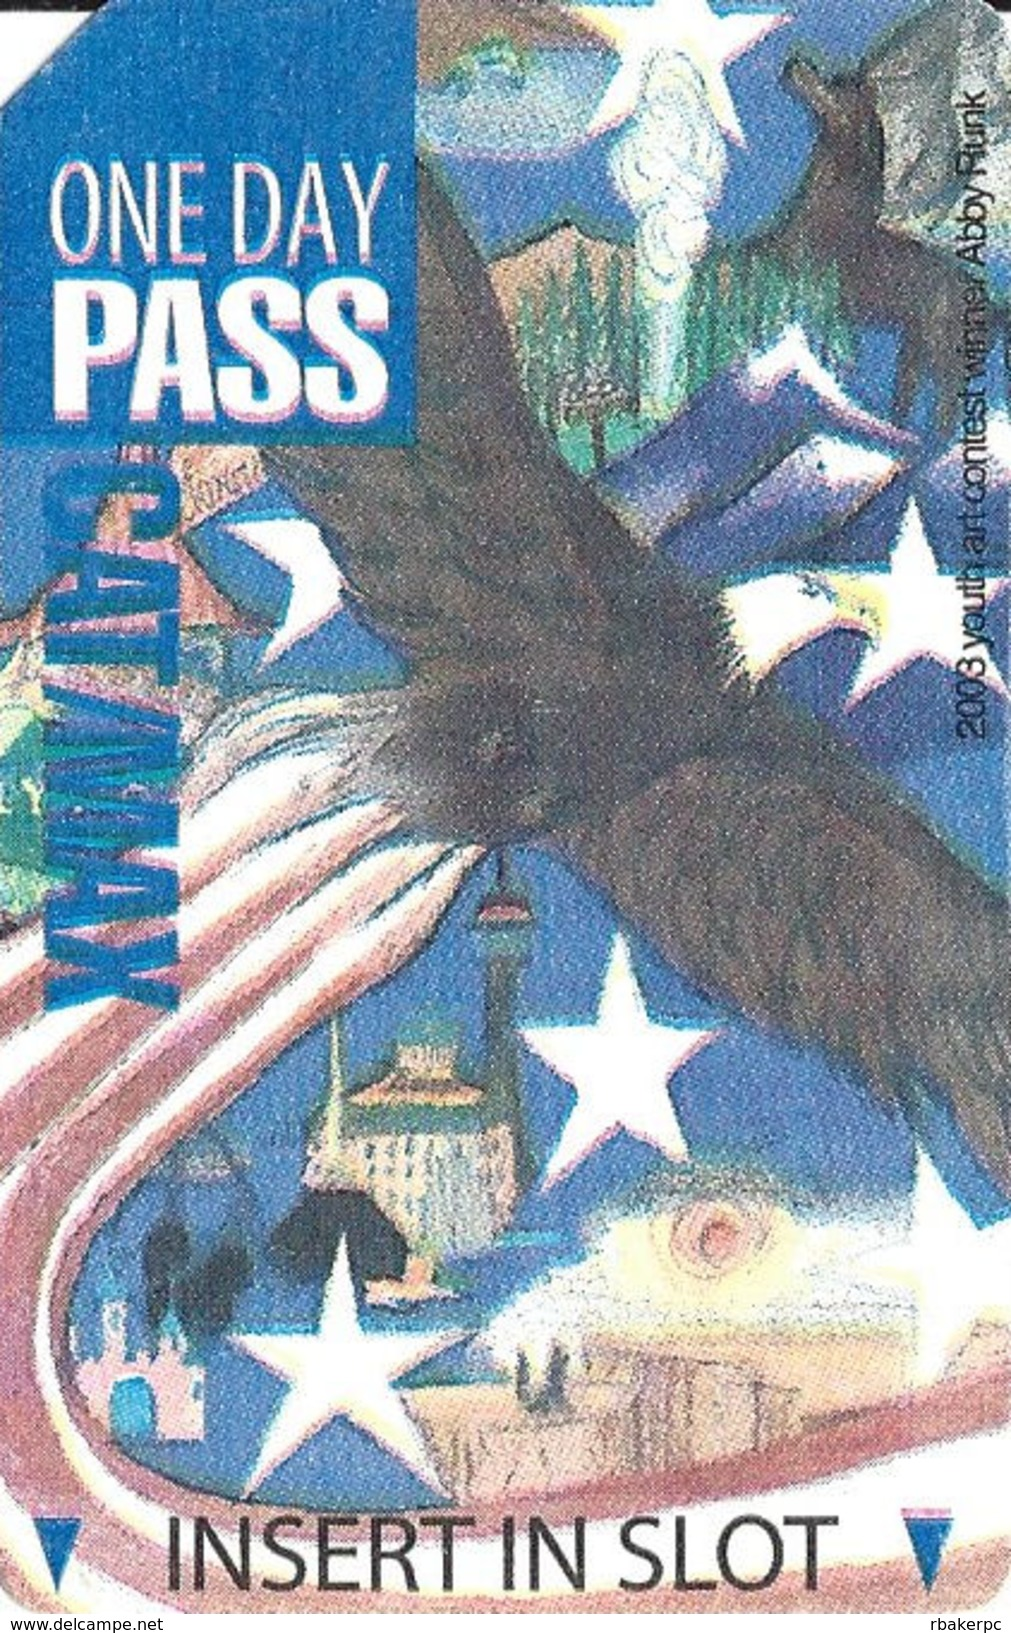 Paper CAT MAX One Day Pass Ticket - 78mm Wide Text Over Mag Stripe - Transportation Tickets